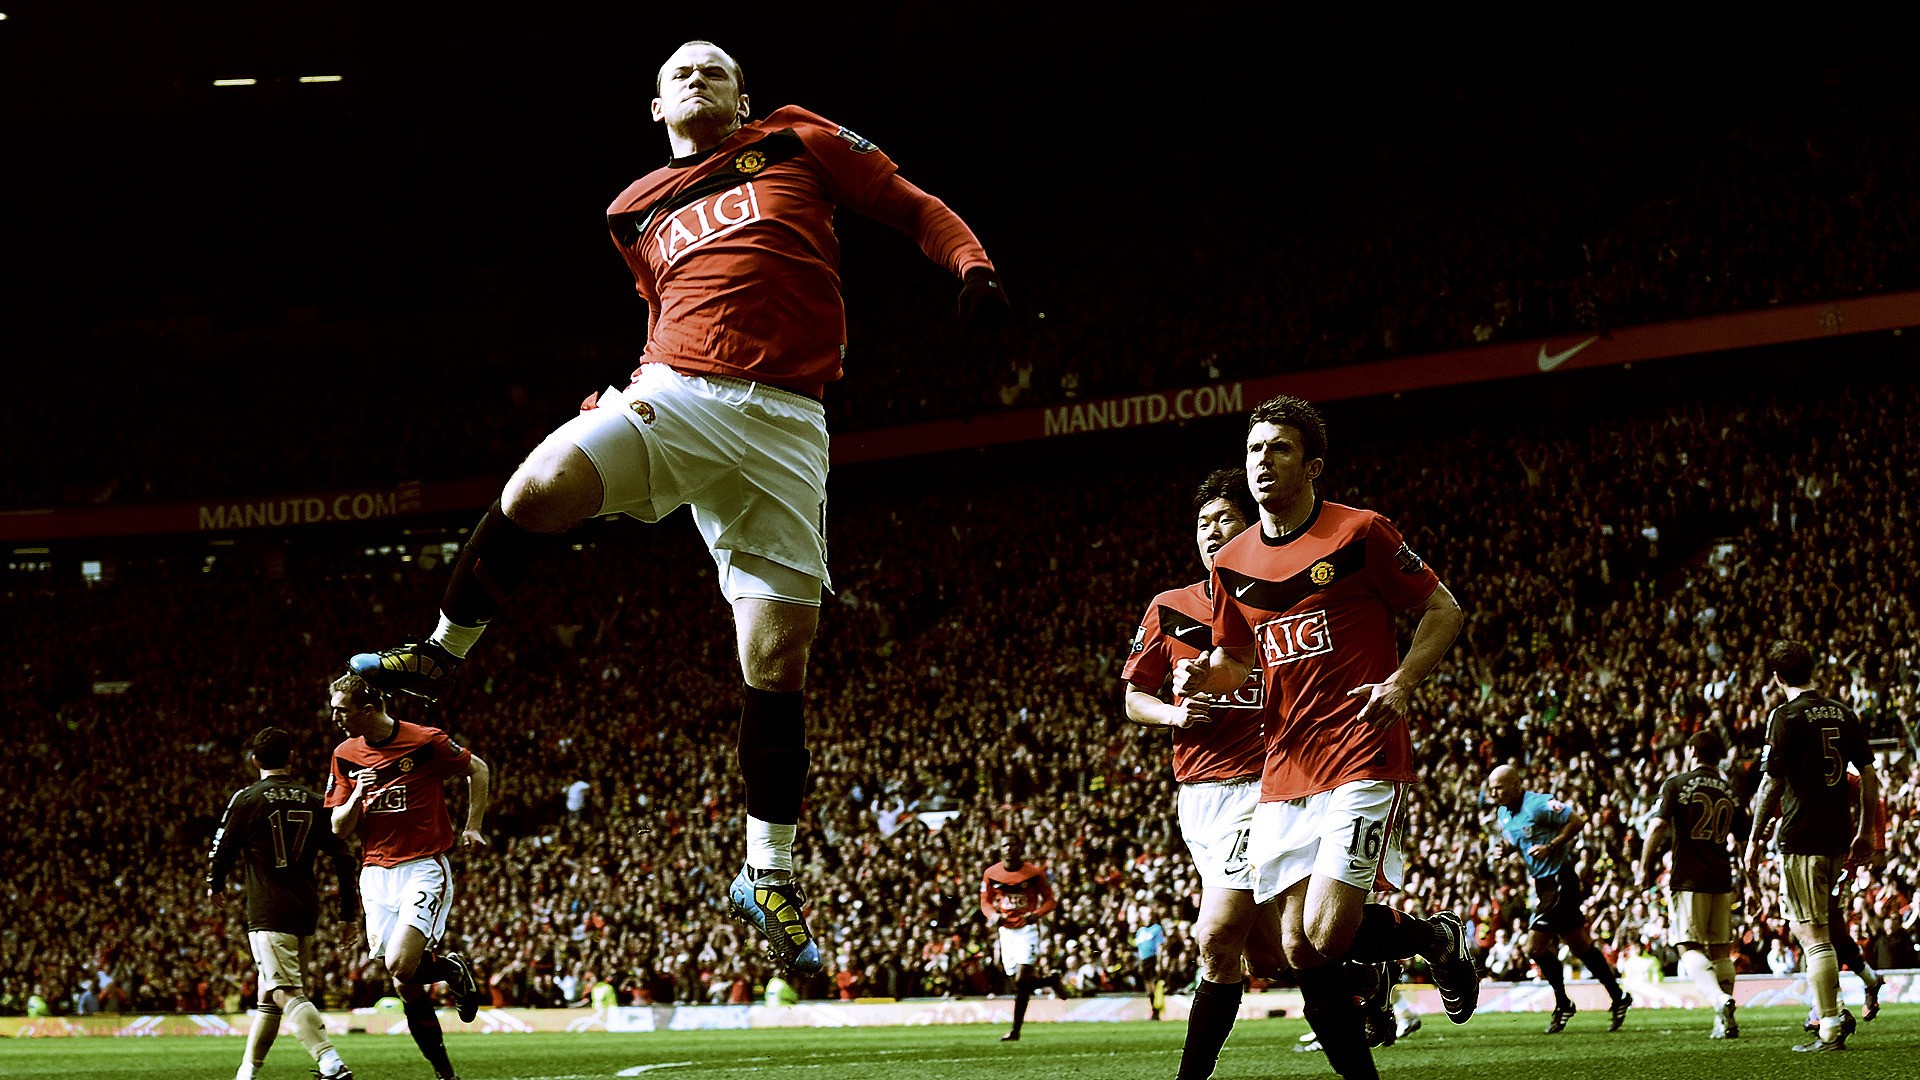 Wayne Rooney Manchester United Hd Wallpaper Hd Wallpapers